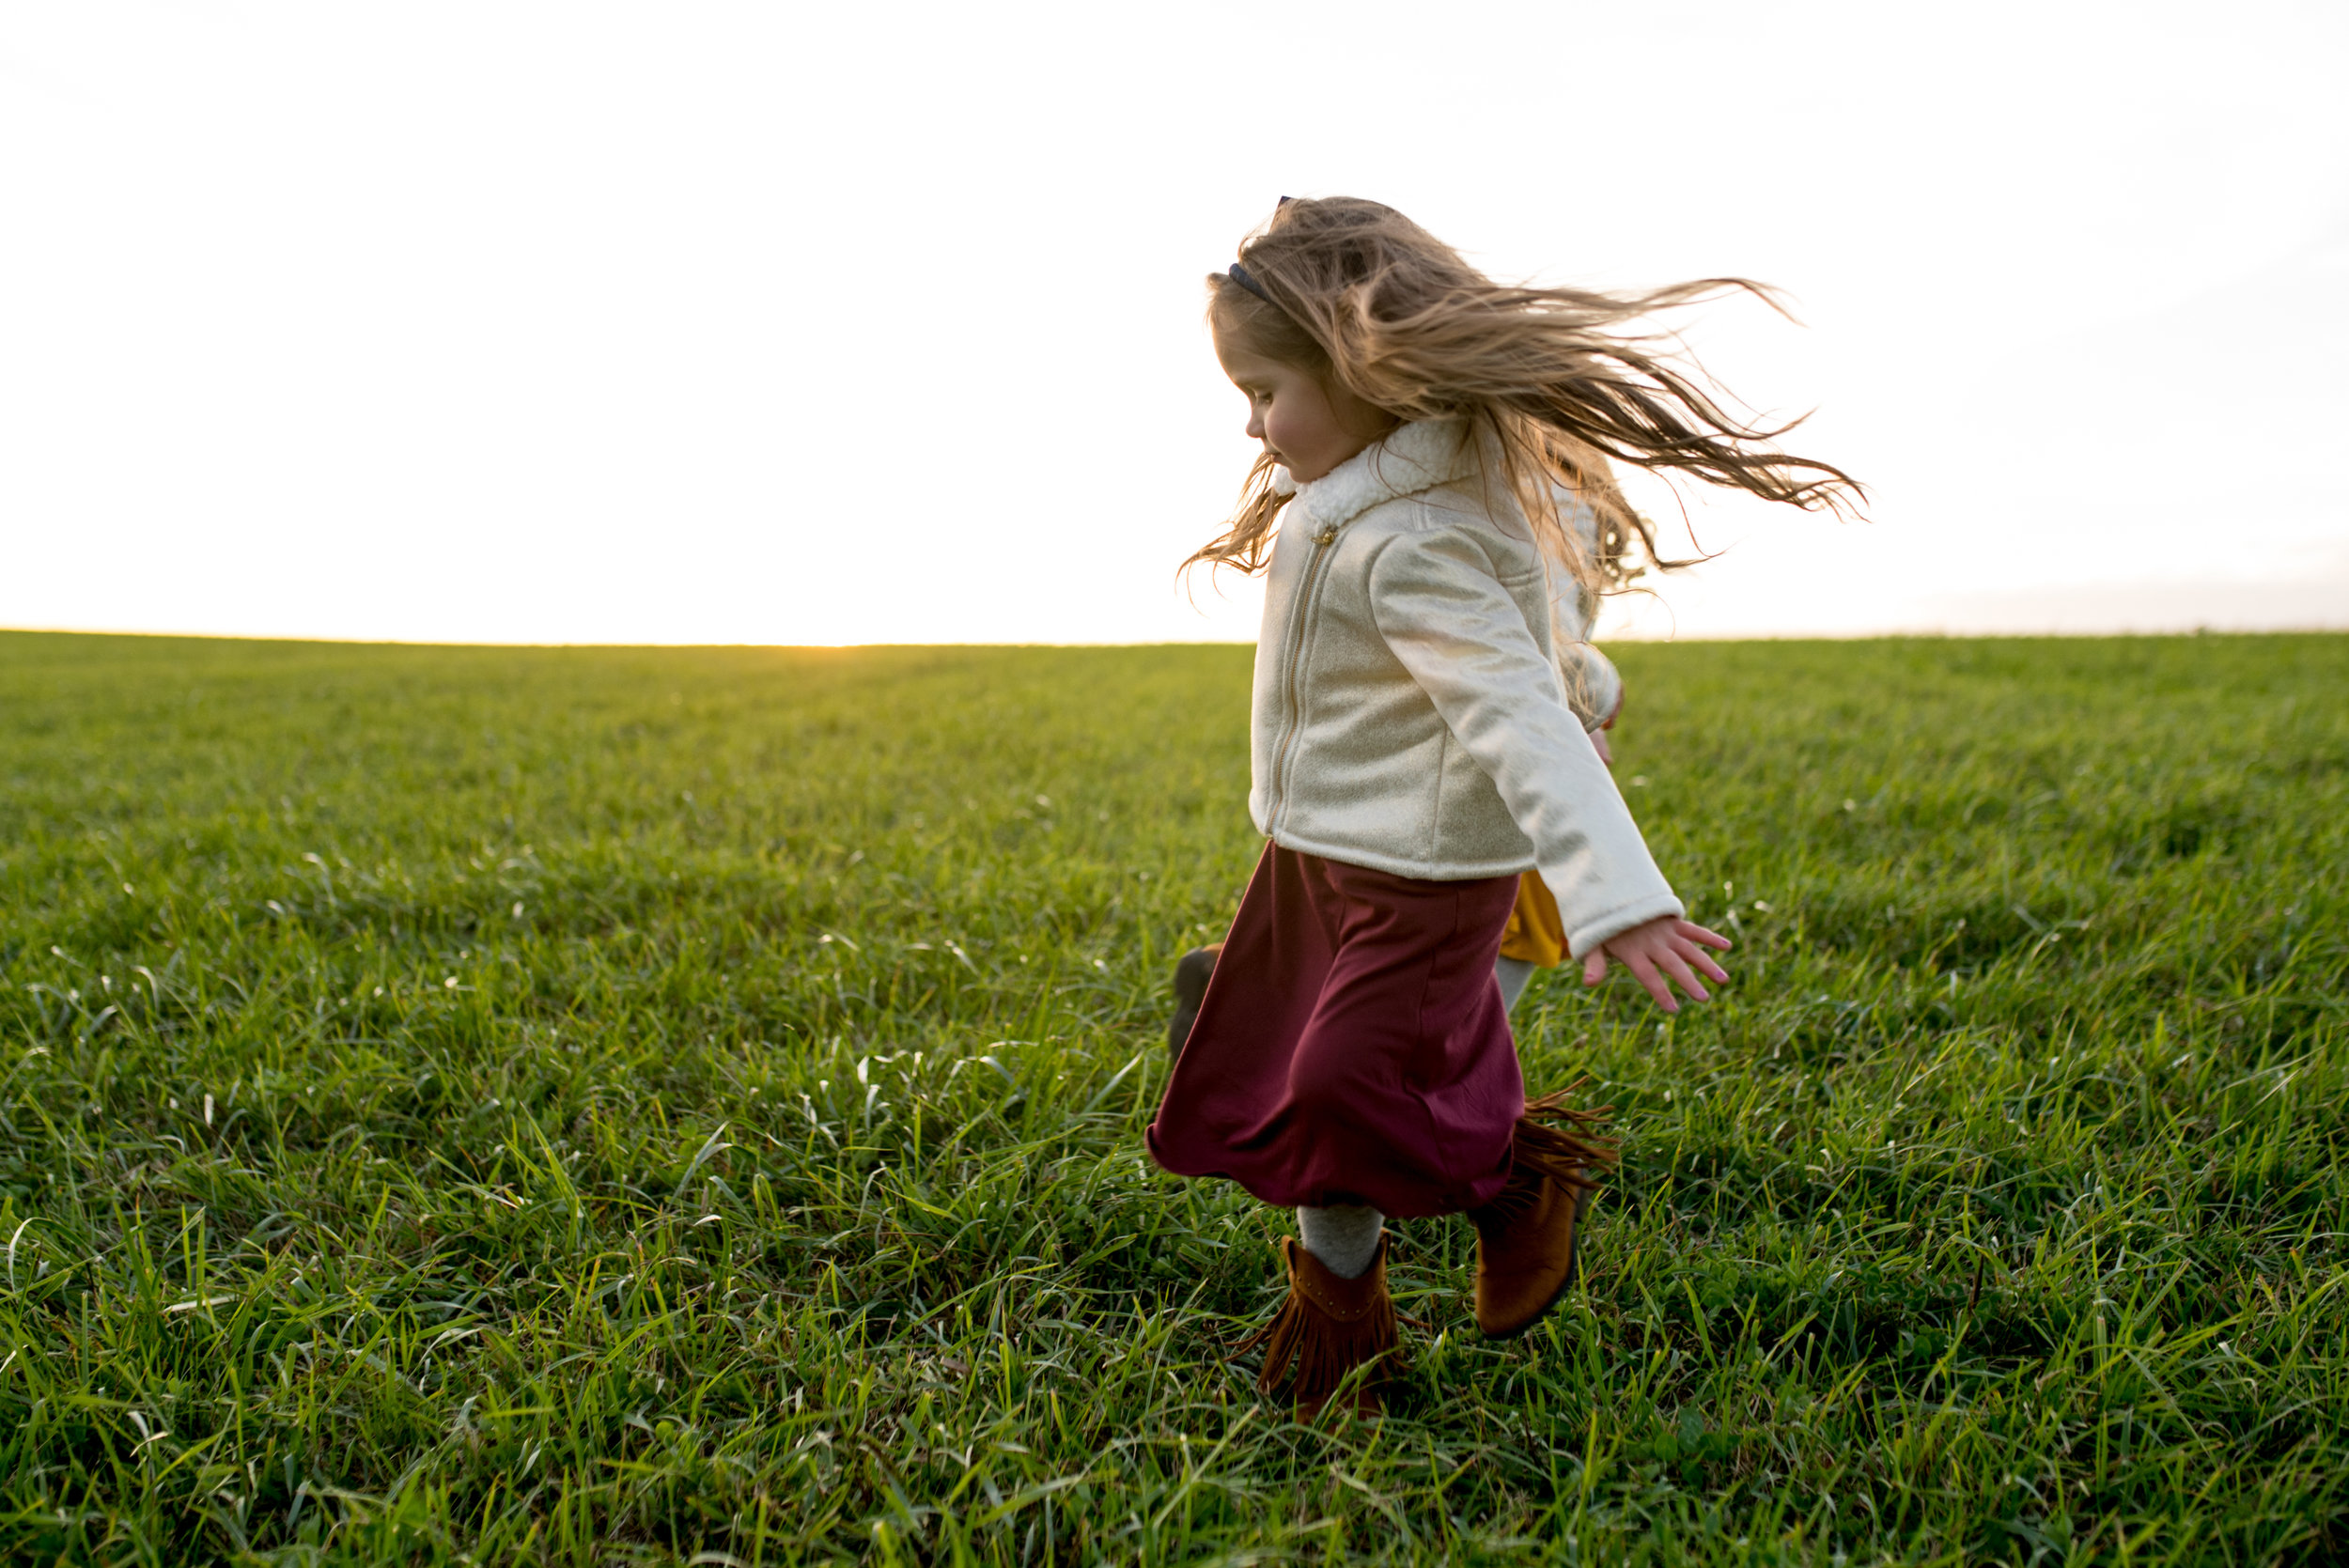 Young girl with long hair and a dress on twirling in a field